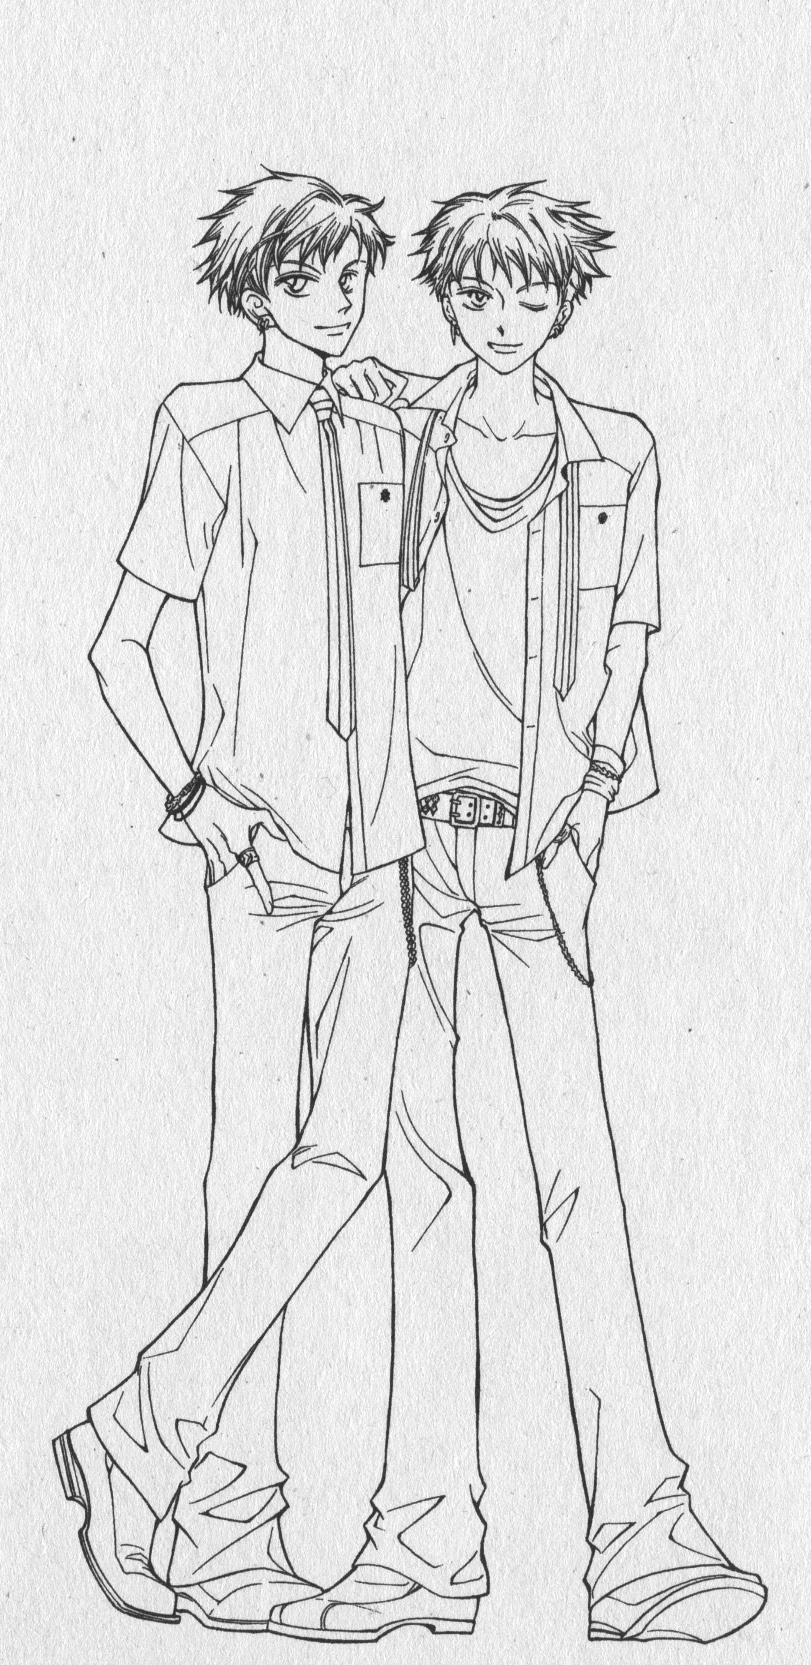 ouran highschool coloring pages - photo#44